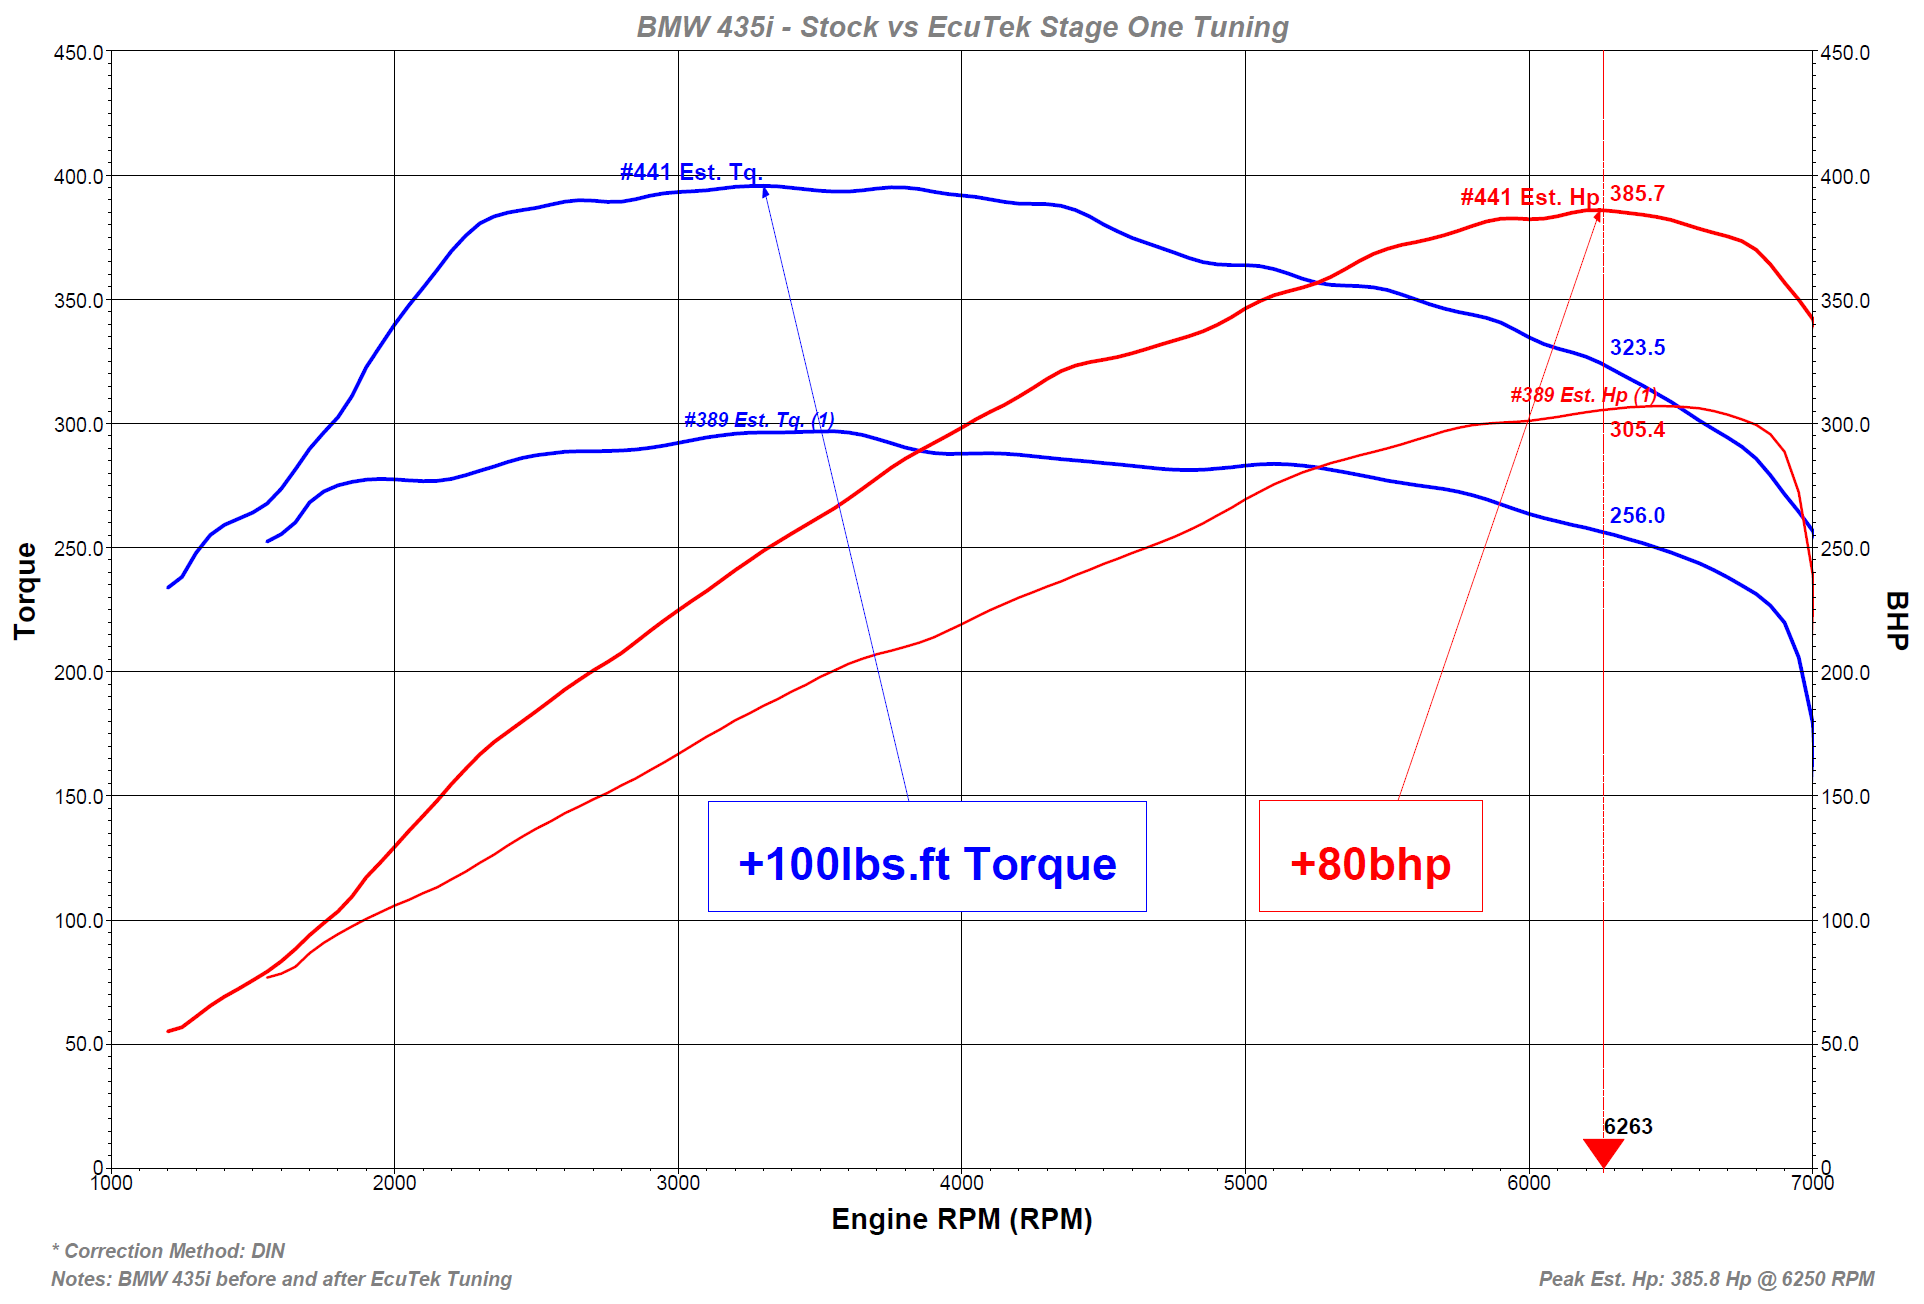 BMW-435i-Stock-vs-EcuTek-Stage-One-Power-and-Torque-graph.png